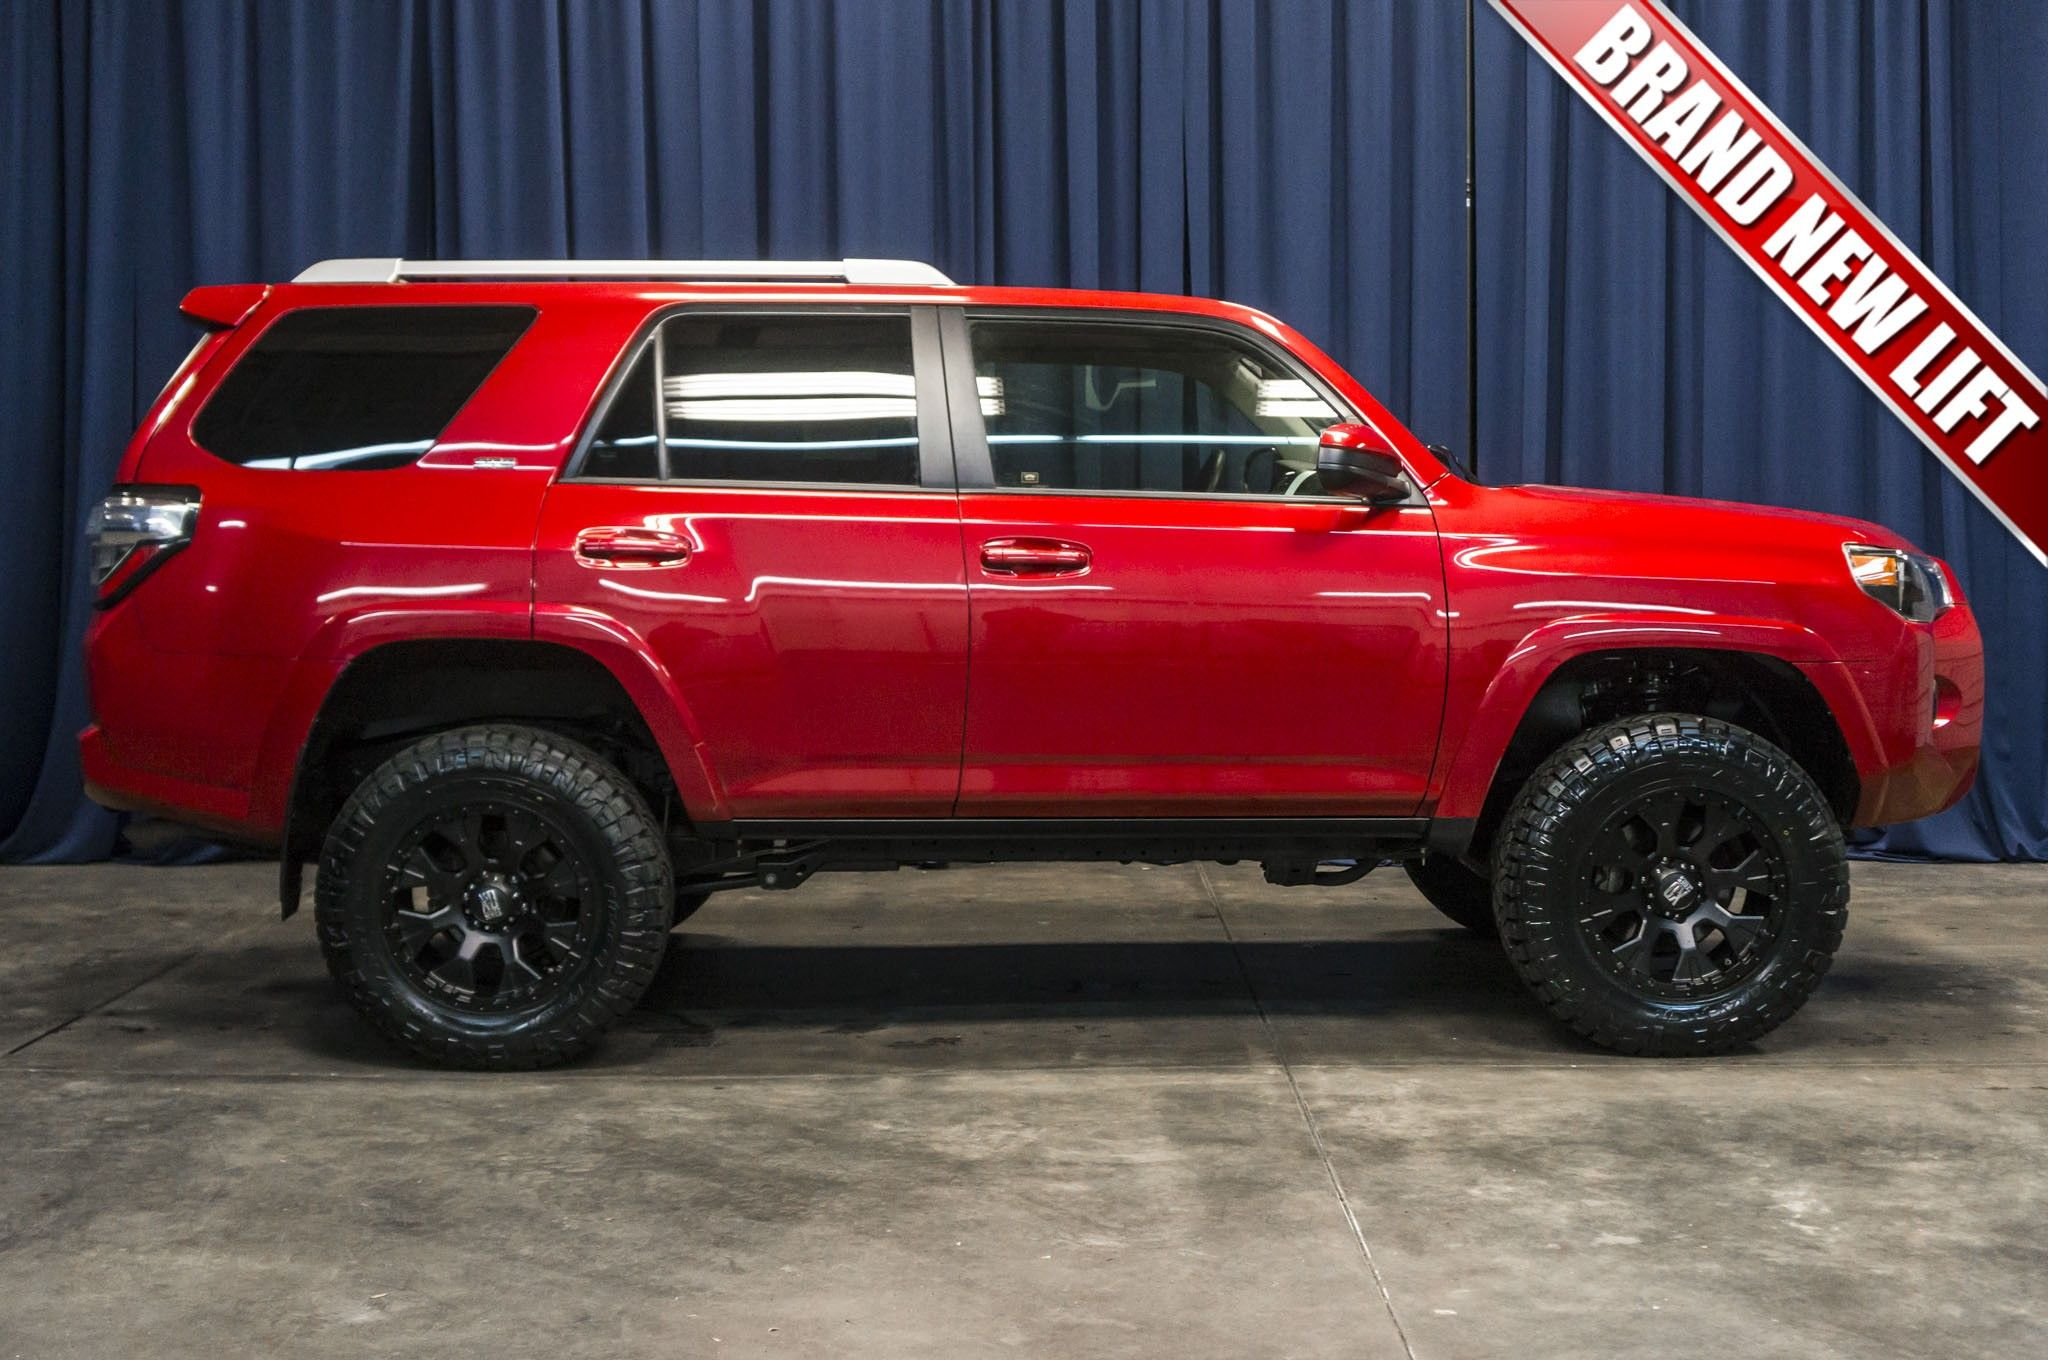 2017 Toyota 4runner Trd Pro For Sale >> Check Out This 4runner Rig Setup Plain And Simple Toyota